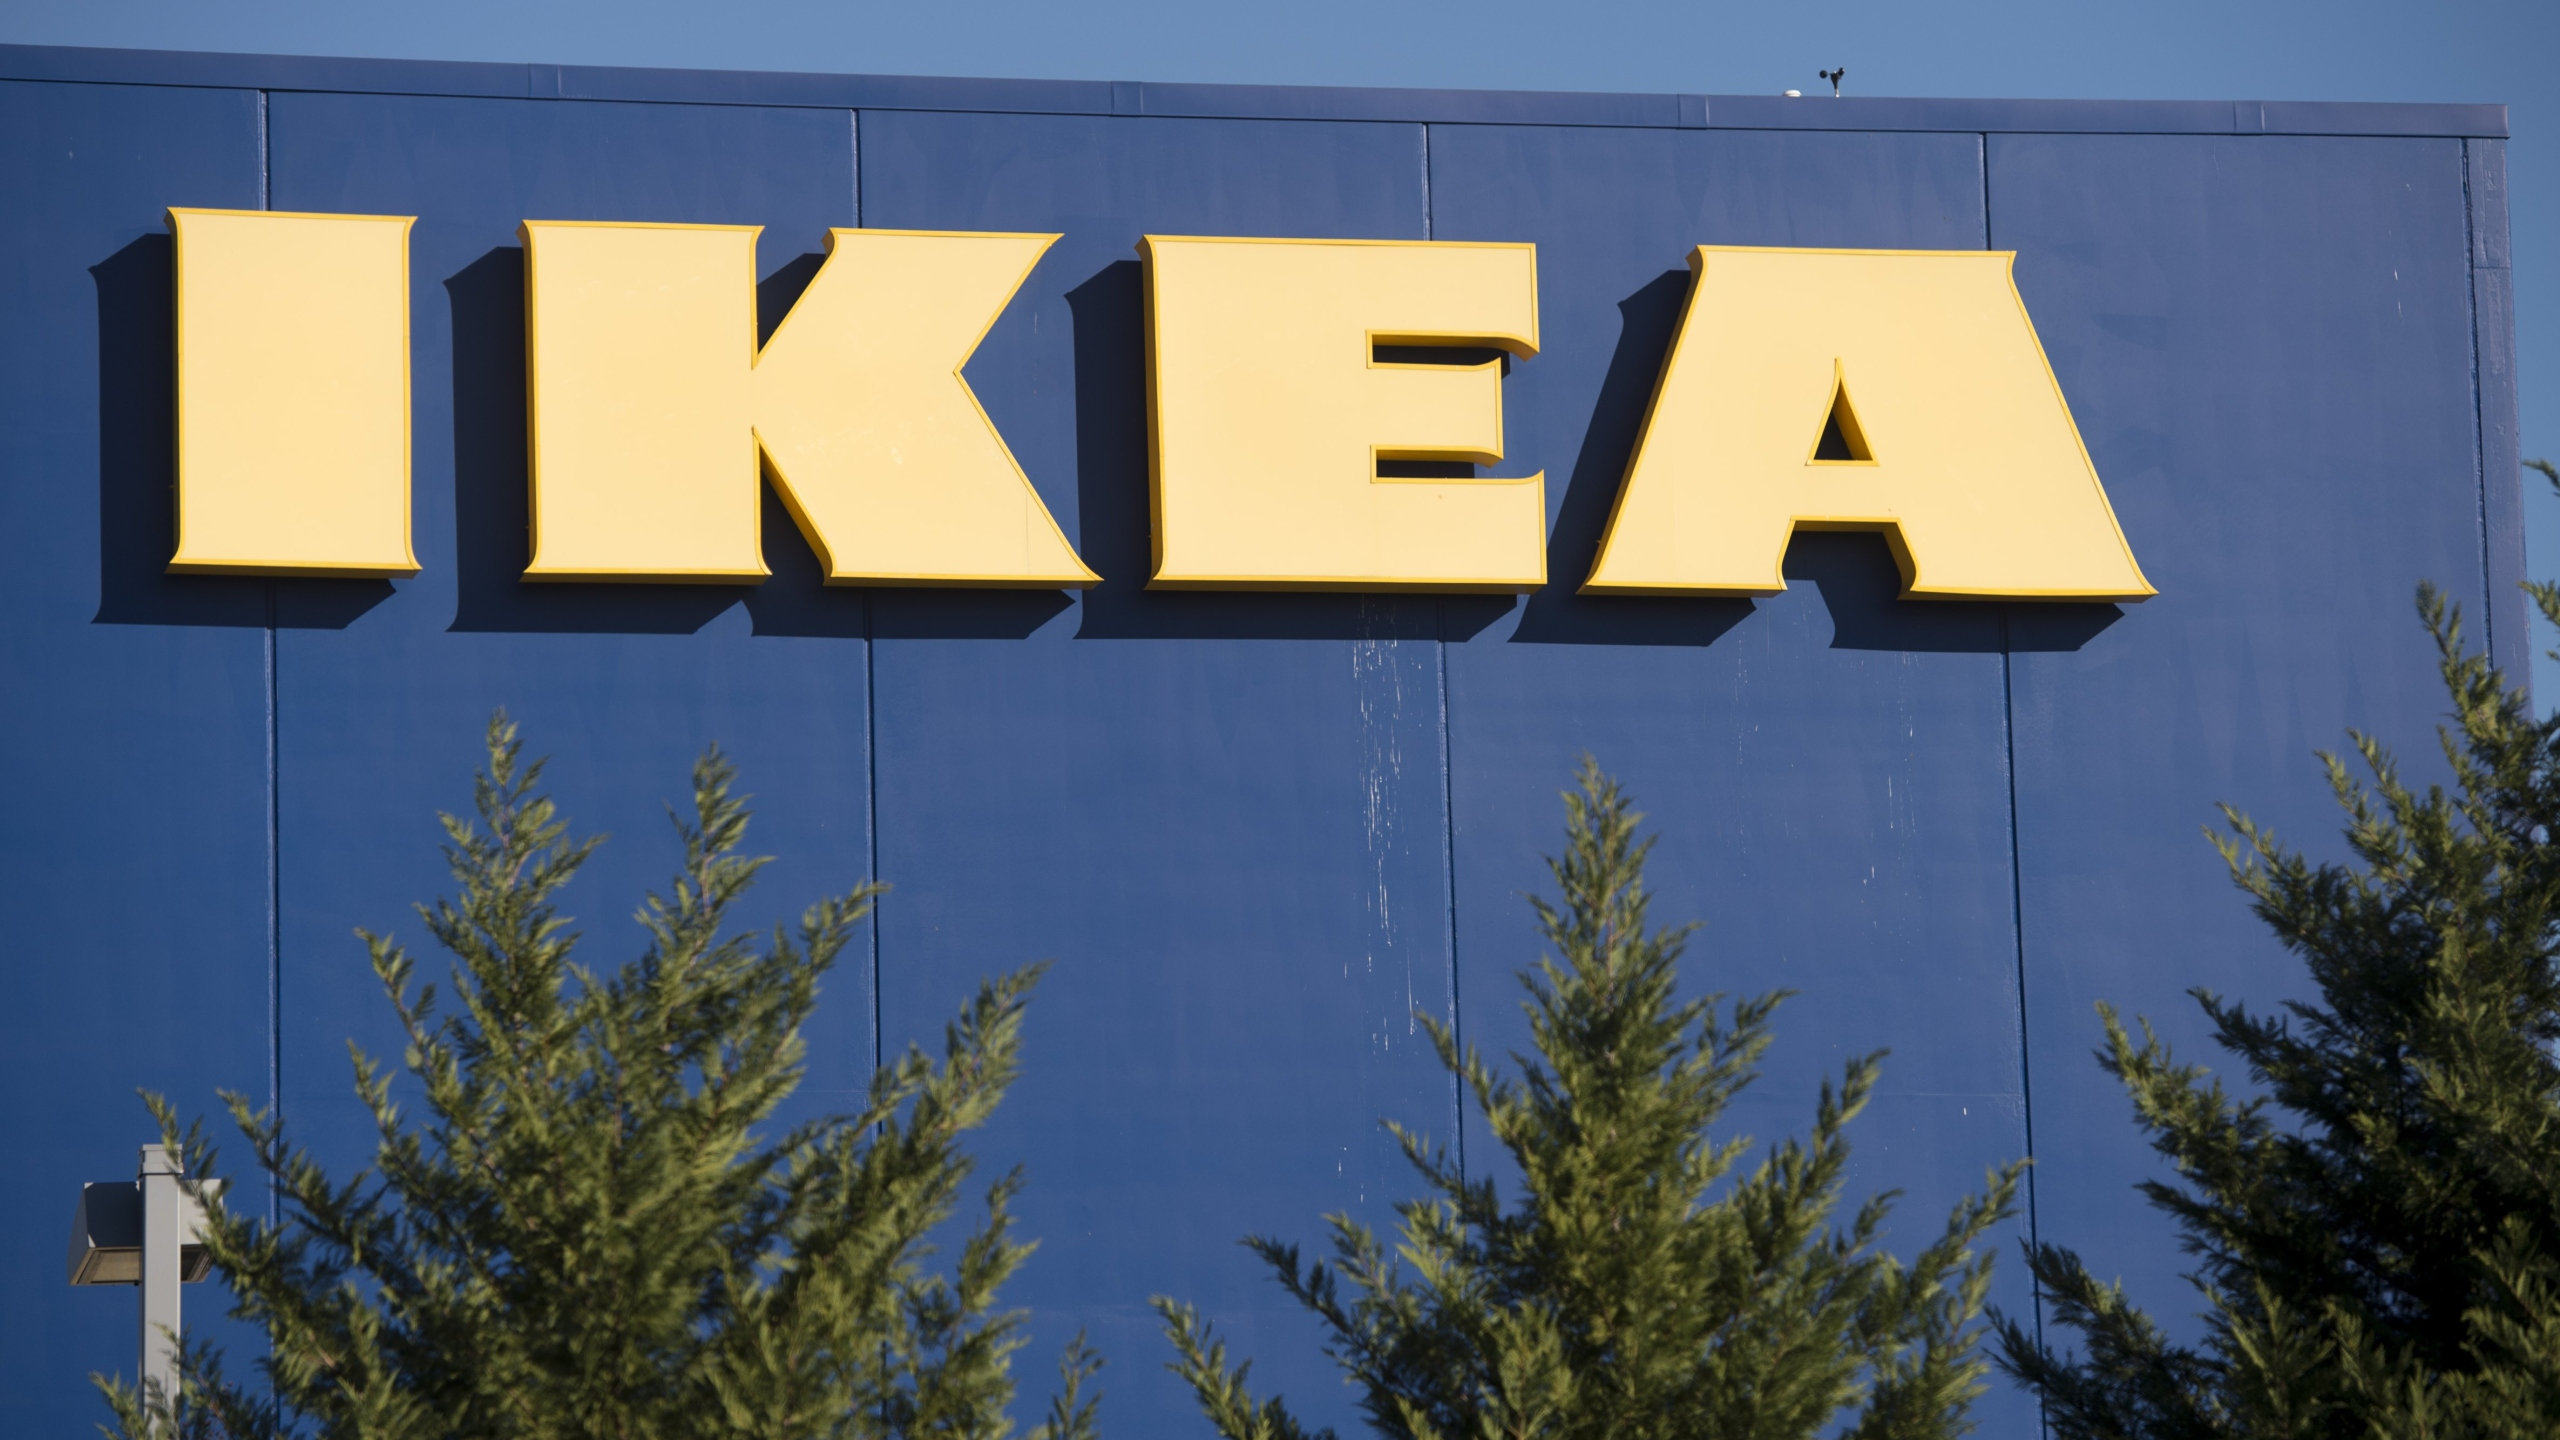 An Ikea furniture store location in Woodbridge, Virginia, is seen in this file photo from Jan. 5, 2016. (Credit: Saul Loeb/AFP/Getty Images)